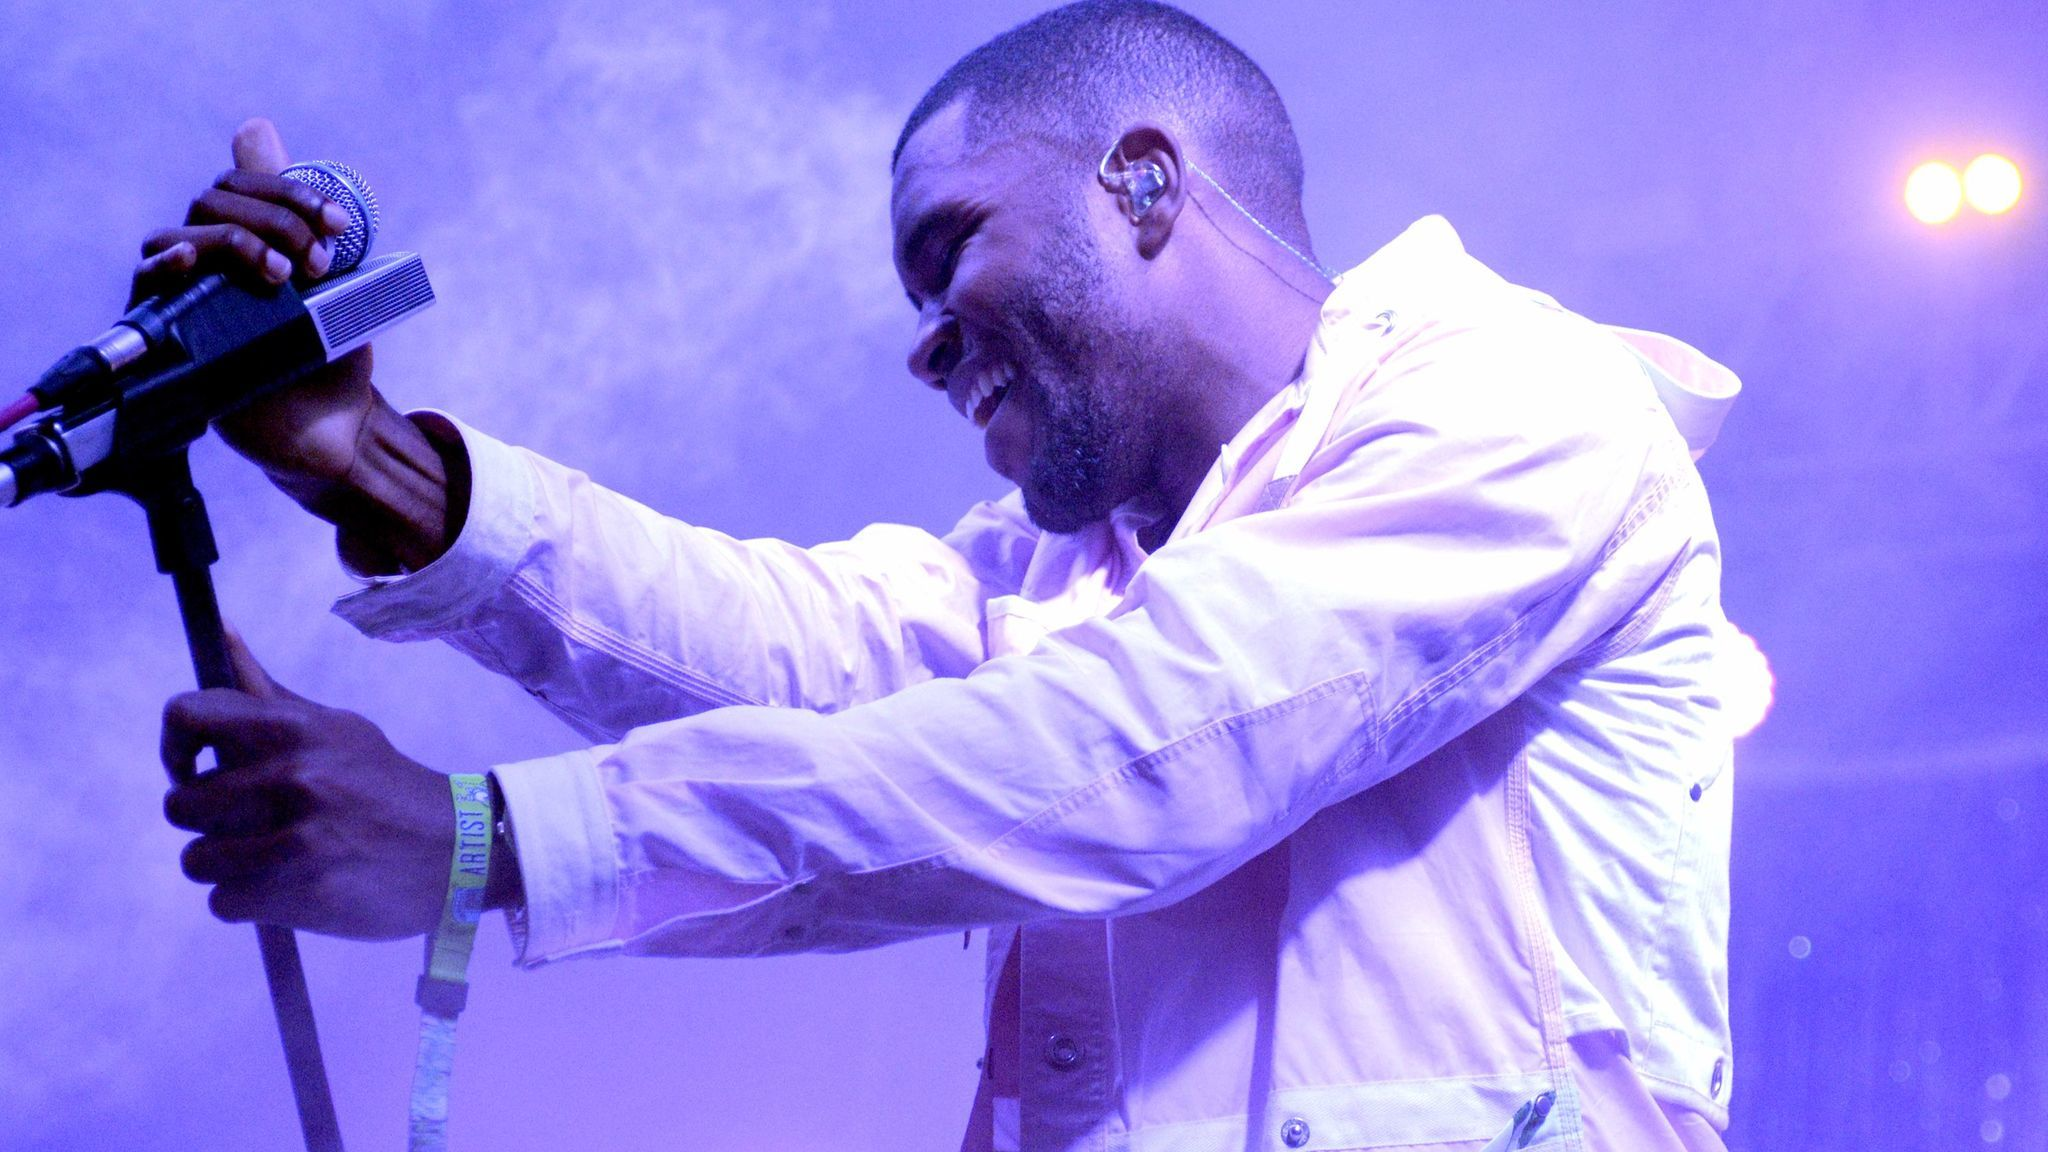 Frank Ocean at the 2014 edition of the Bonnaroo Music & Arts Festival in Manchester, Tenn.